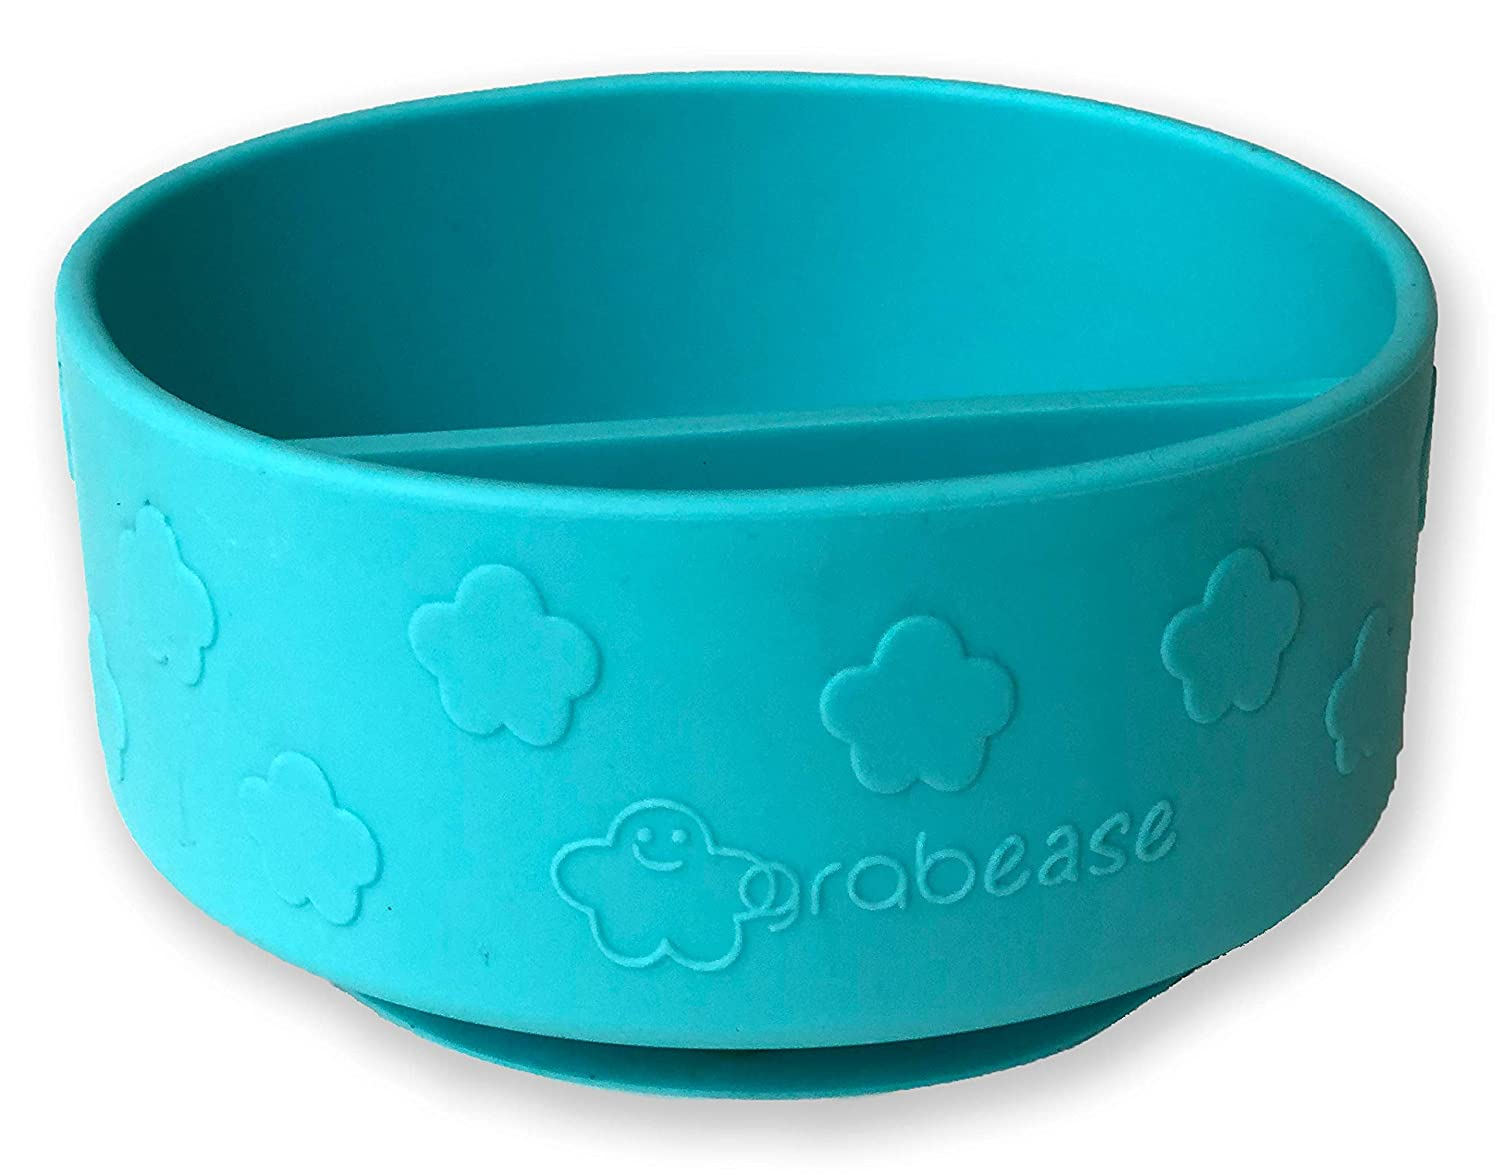 Grabease Divided Silicone Suction Bowl – Self-Feeding Toddler & Baby Bowl with 2 Sections, Easy-Scoop Walls – No Phthalates, PVC, or BPA – Dishwasher- & Sterilizer-Safe Baby Supplies & Gifts, Teal